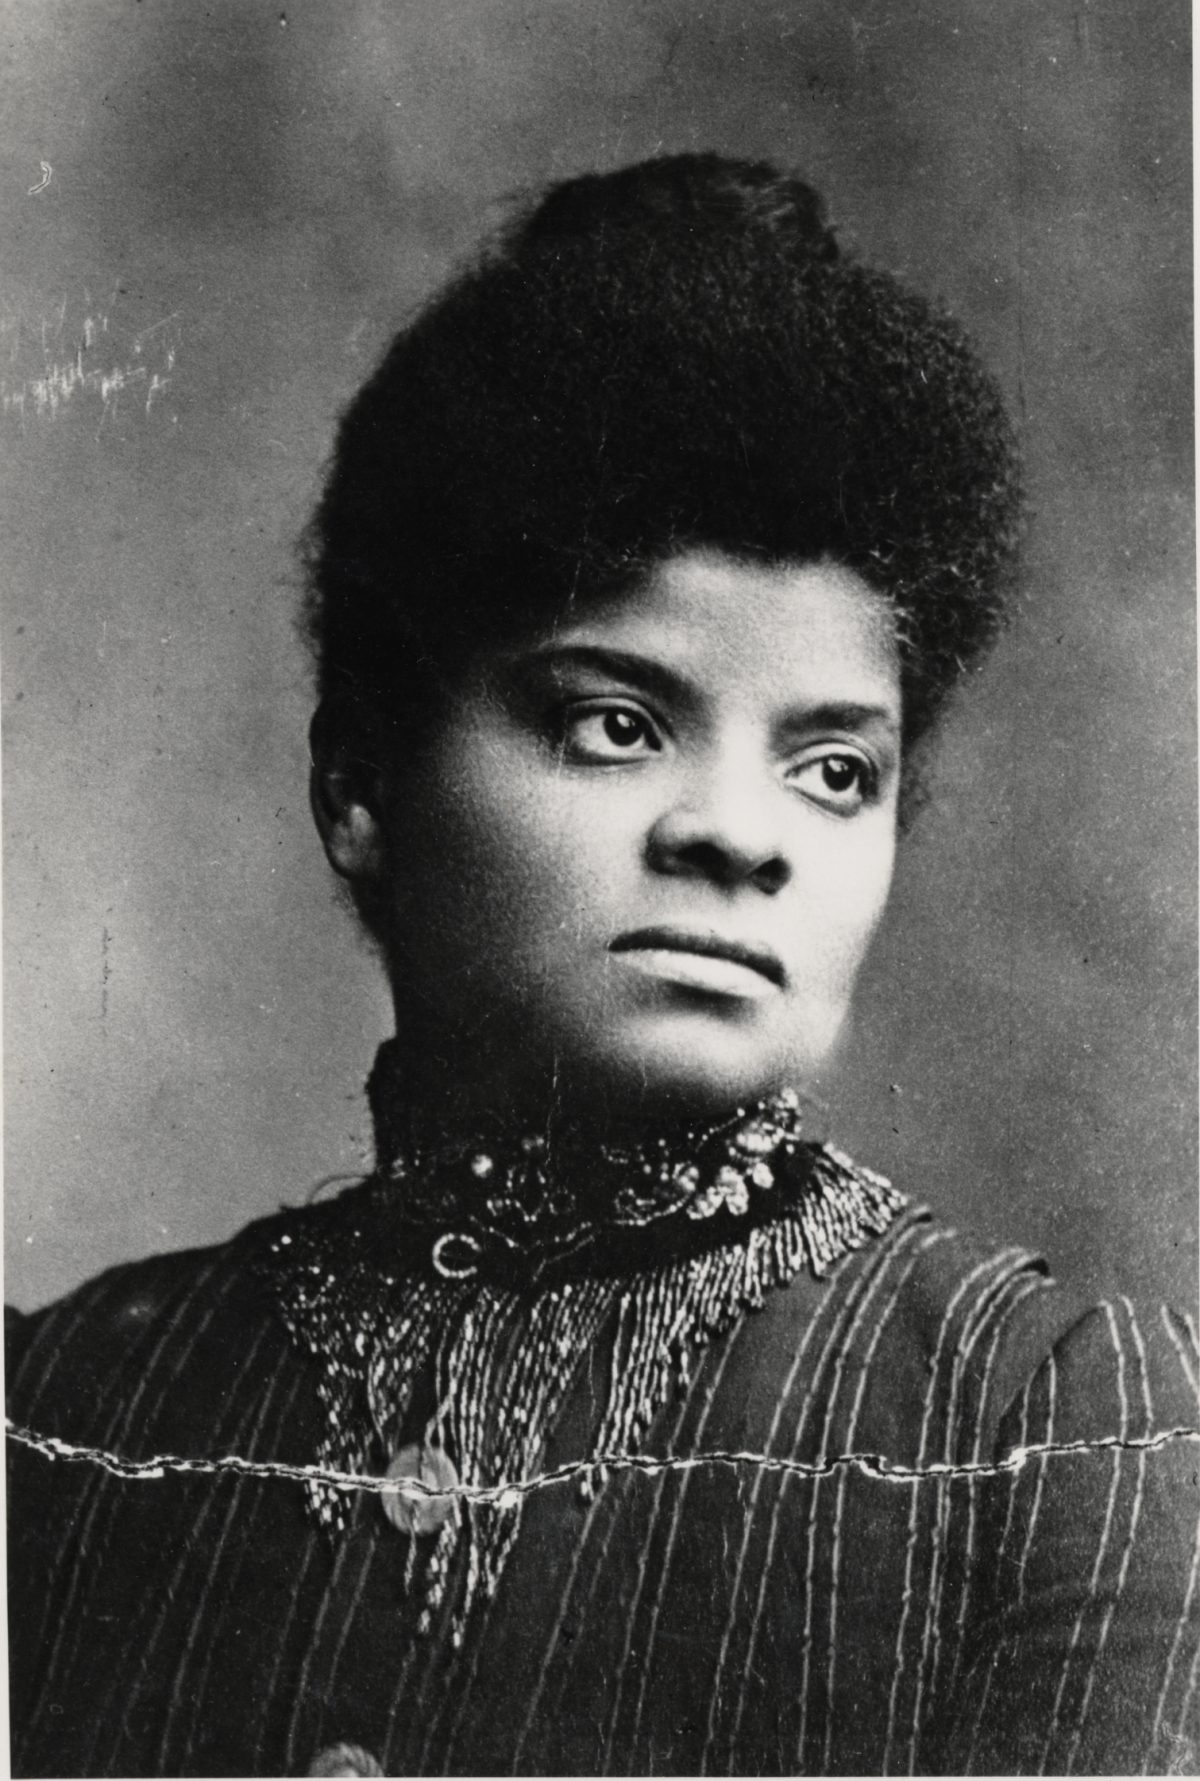 An image of Ida B. Wells around the age of 30. She is depicted from chest-level to the top of her head and wearing a dark top that covers her shoulders and neck. It has an elaborate collar. Her head is turned to the side and her hair is pulled back.